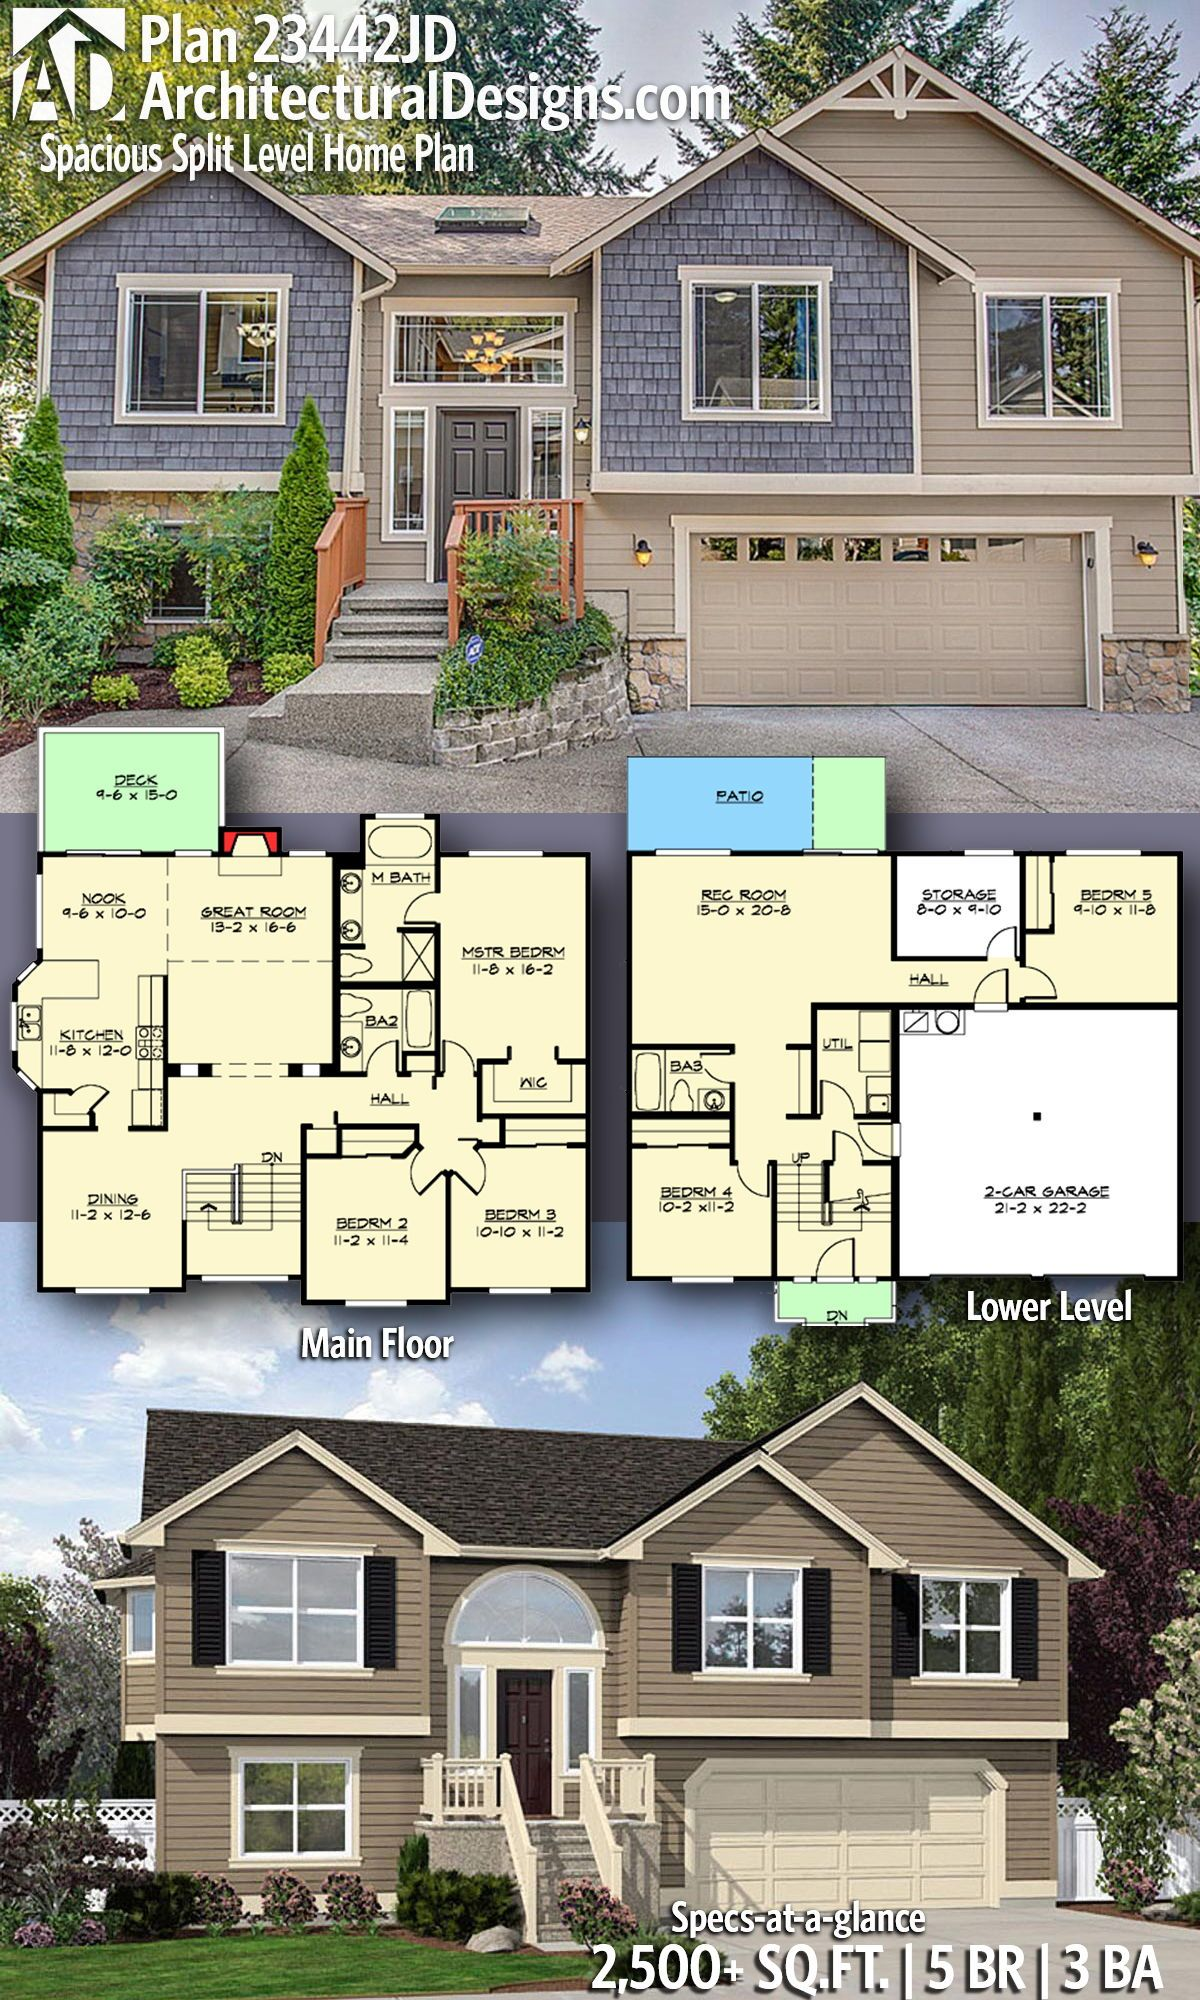 Plan 23442jd Spacious Split Level Home Plan Architectural